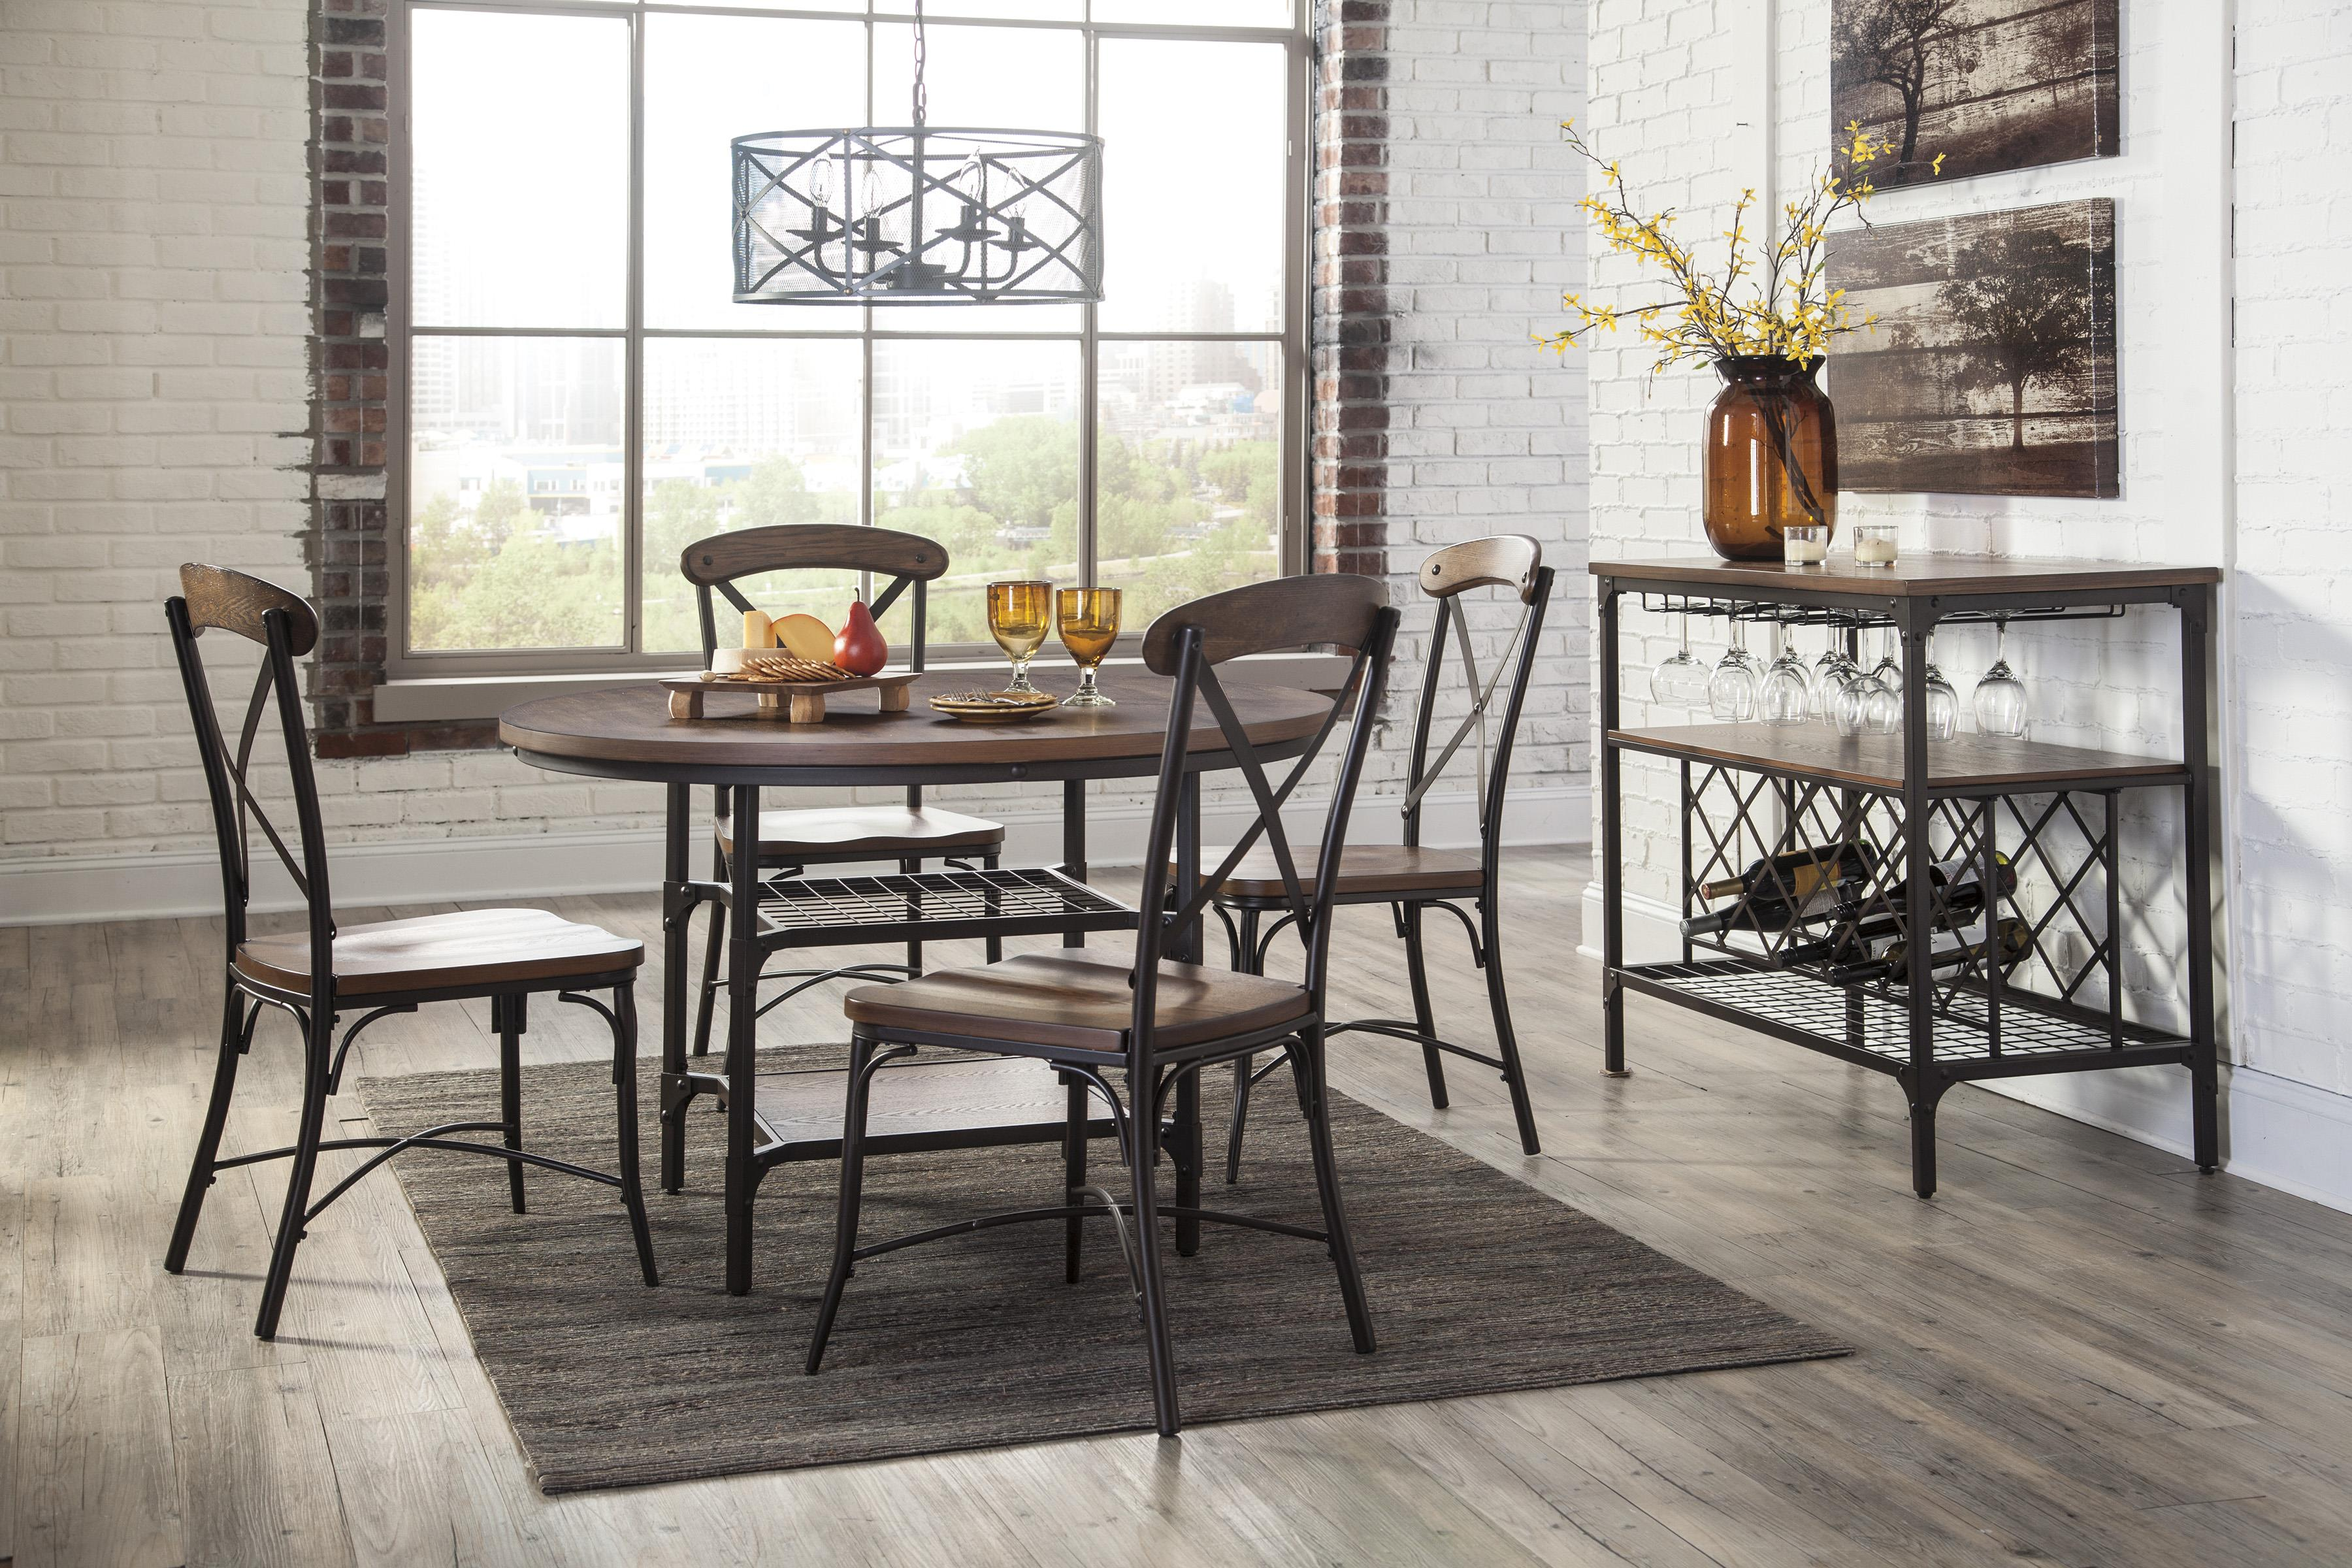 Signature Design By Ashley Rolena Bistro Style Metal/Wood Dining Room Side  Chair   Colderu0027s Furniture And Appliance   Dining Side Chairs